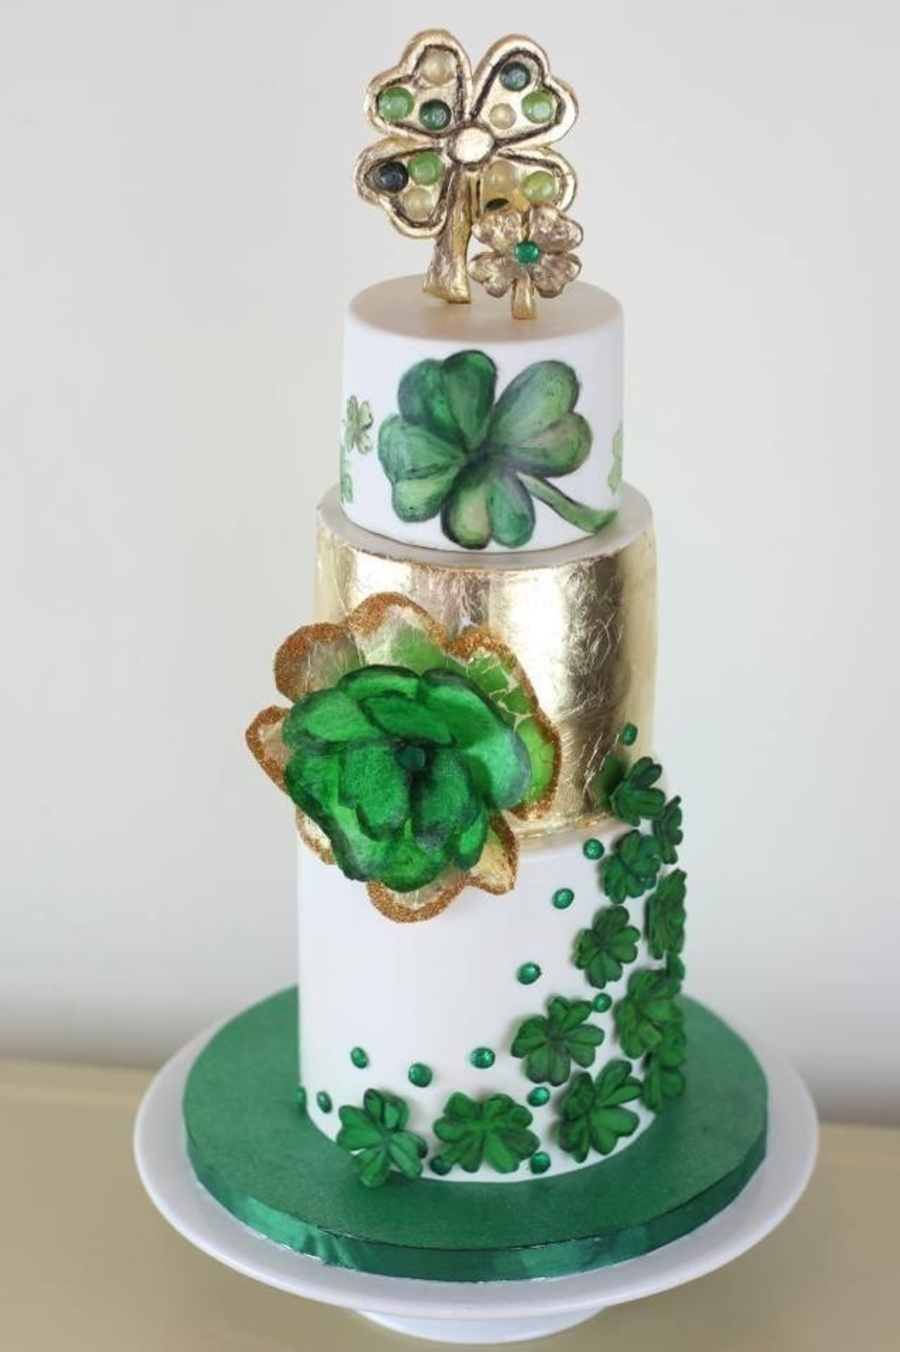 4 Leaf Clover 30Th Birthday Cake Modeling Chocolate Topper Made To Look Like Jewelry Fantasy Wafer Paper Clover On Side Fondant Details O on Cake Central